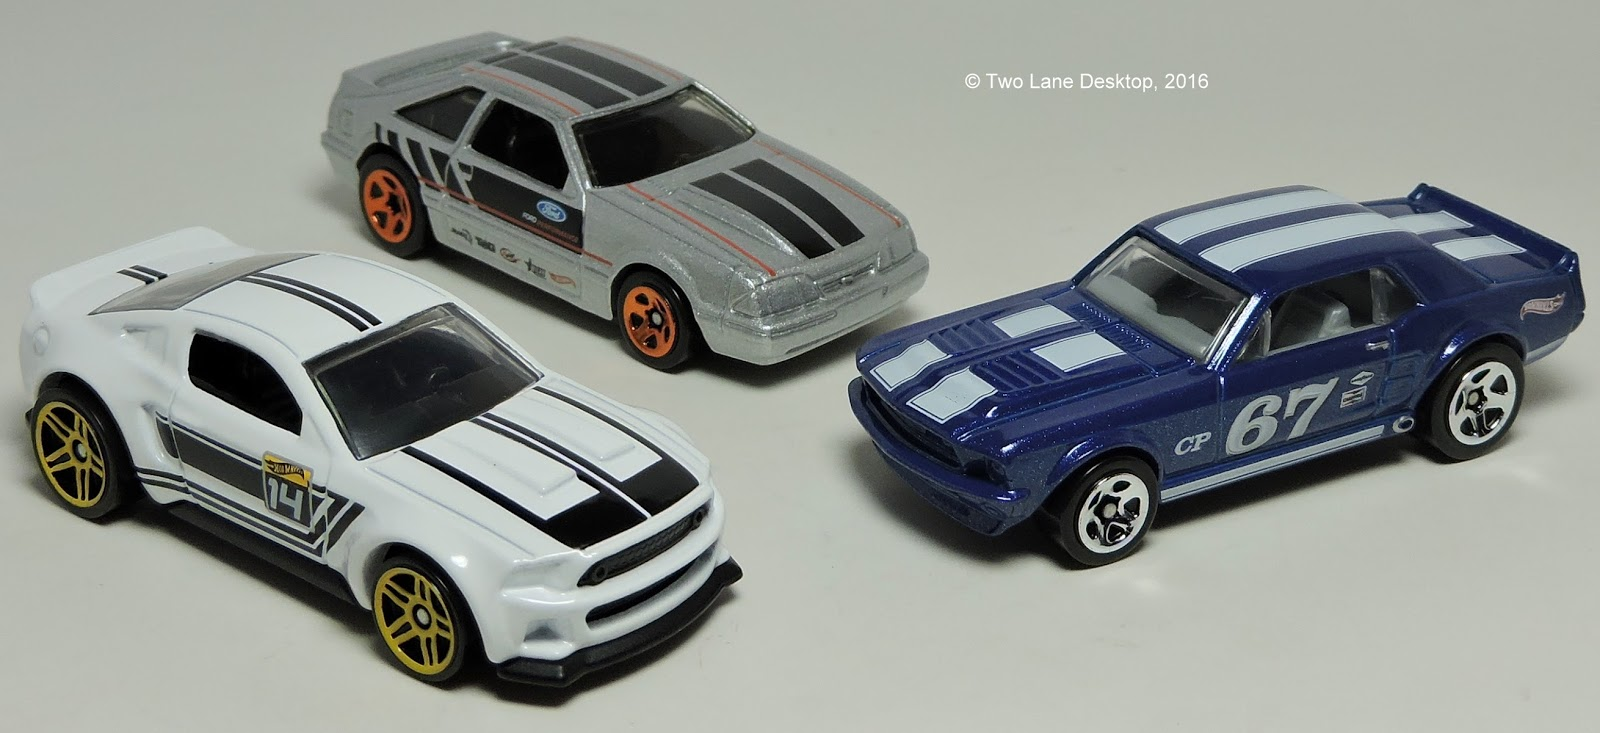 Earlier this year hot wheels released a set at wal mart called ford performance and this eight car set mostly included you guessed it mustangs